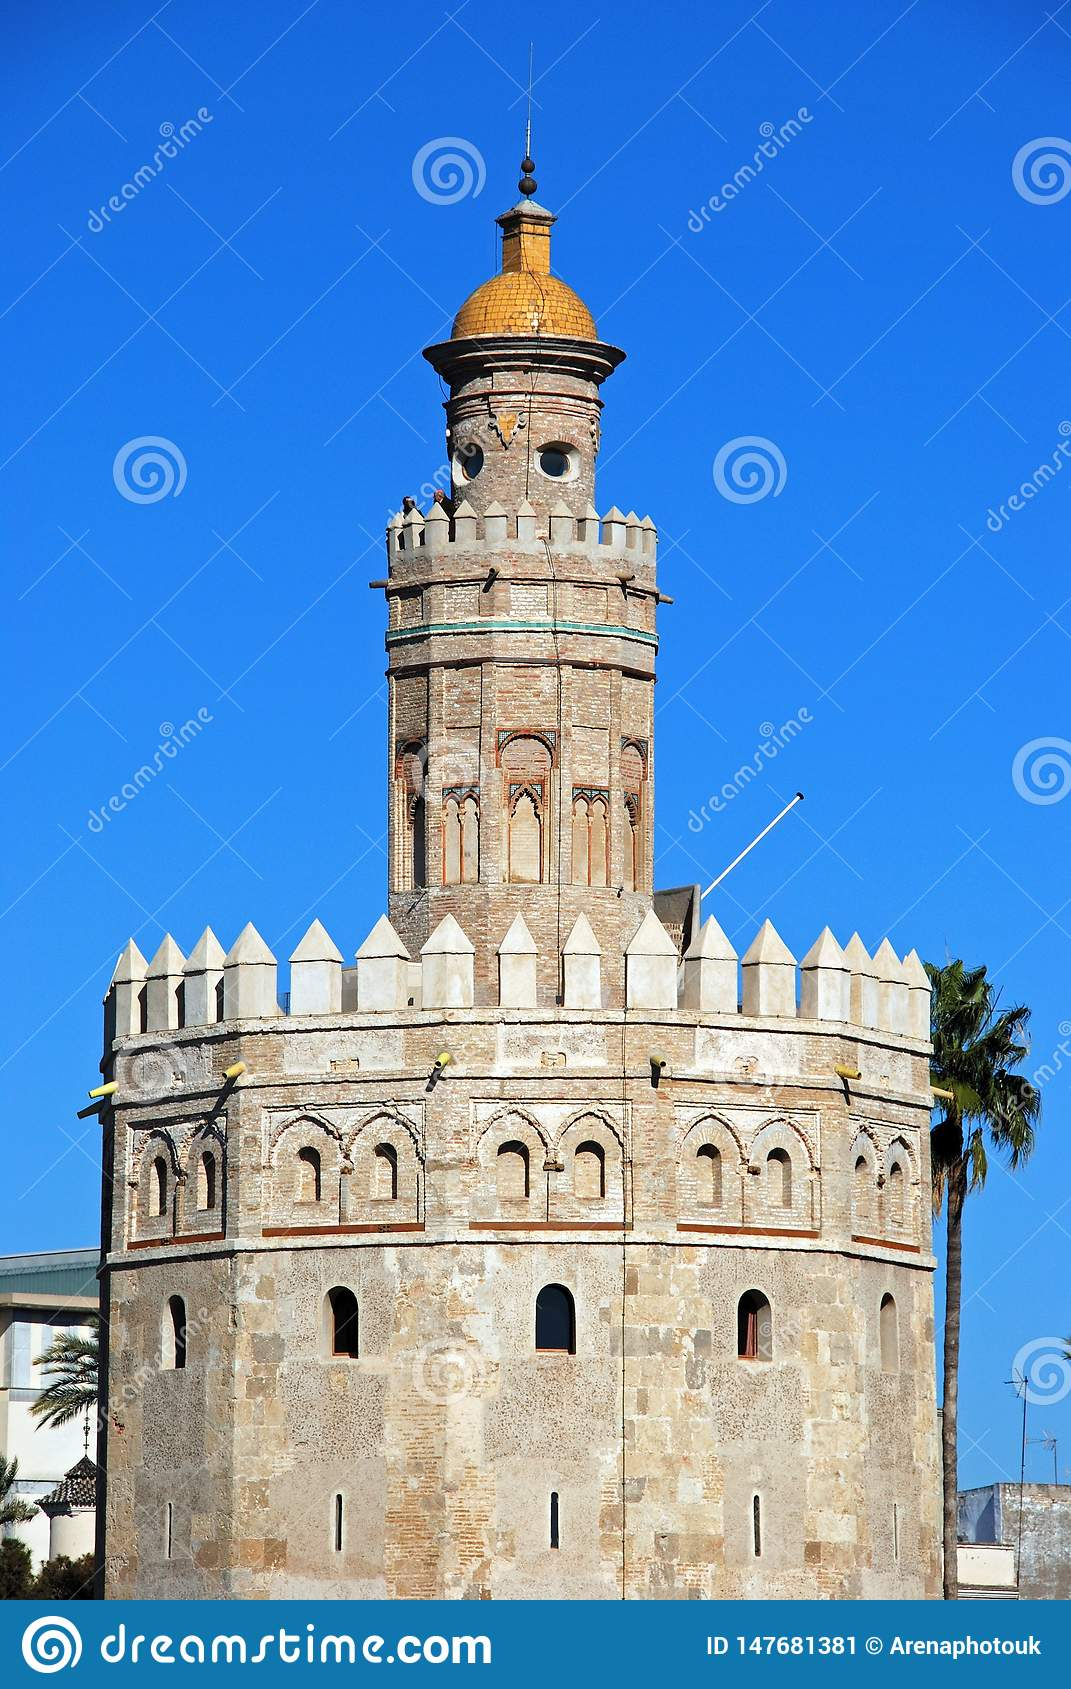 Top of the Torre del Oro, Seville, Spain.